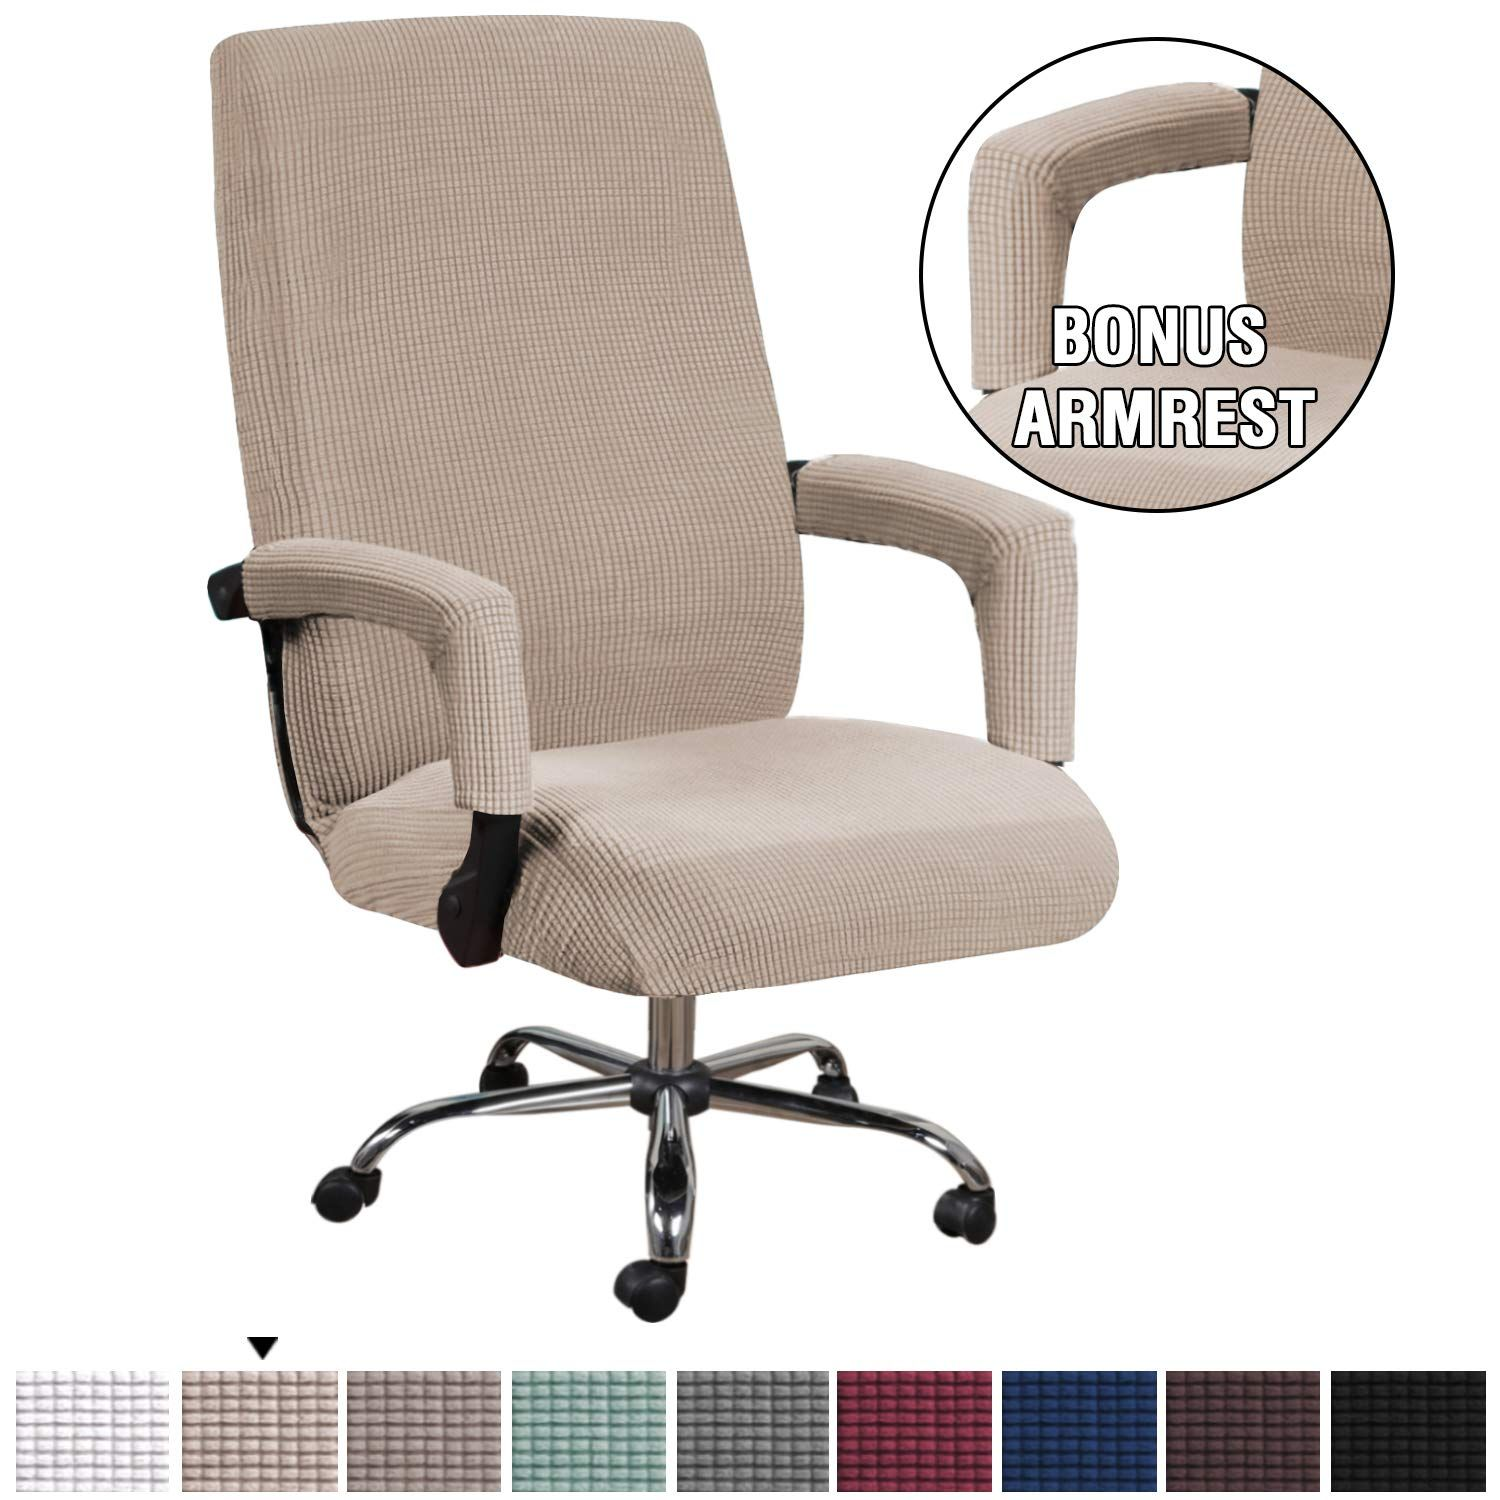 H Versailtex Form Fit Stretch Stylish Furniture Cover For Computer Office Chair Featuring Rich Jacquar Slipcovers For Chairs Stylish Office Chairs Chair Covers